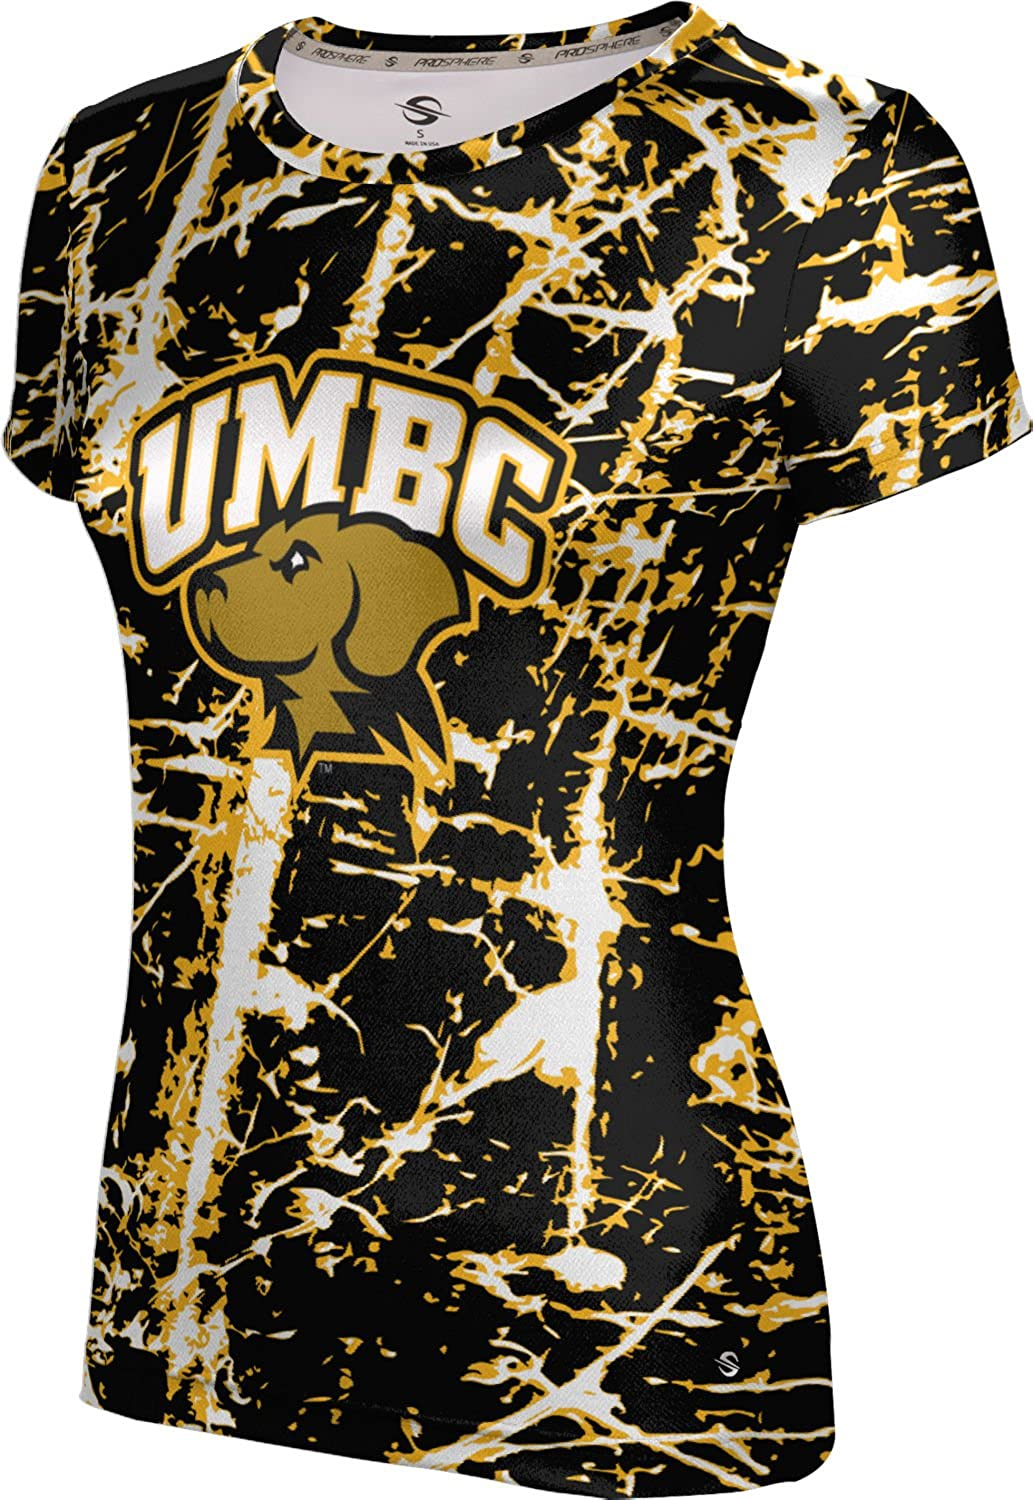 ProSphere University of Maryland Baltimore County Girls' Performance T-Shirt (Distressed)